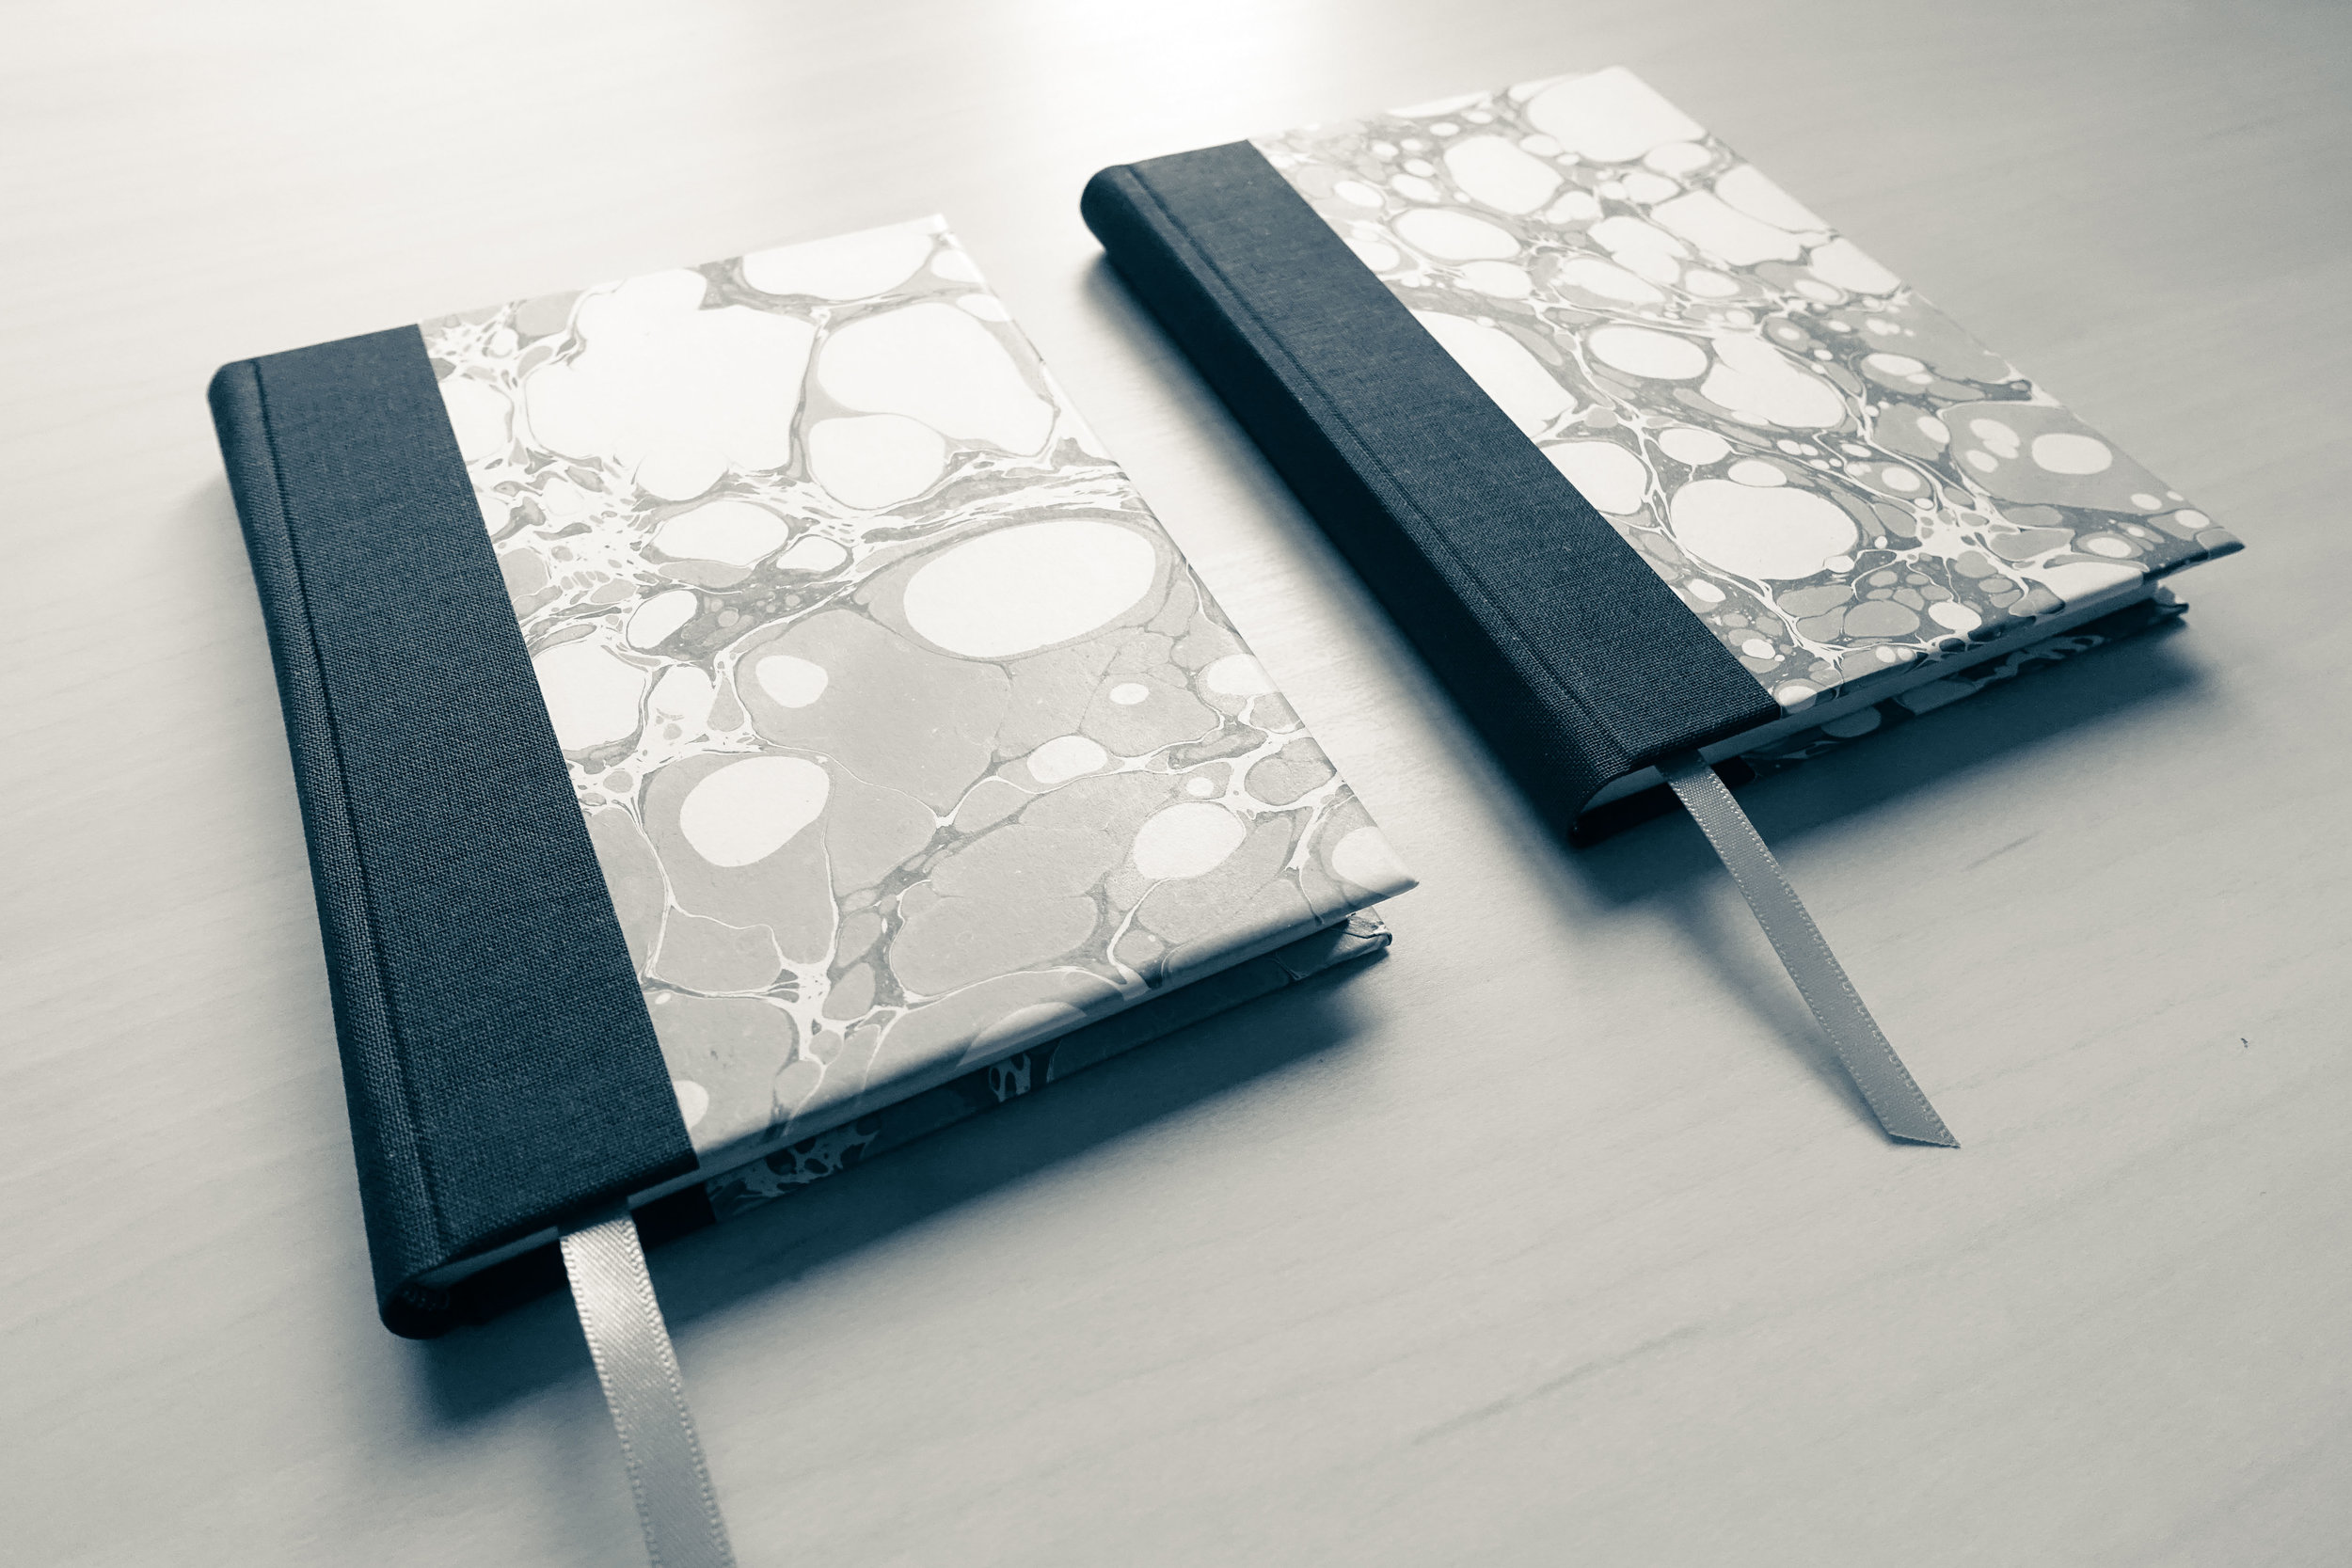 Marbled notebooks.jpg